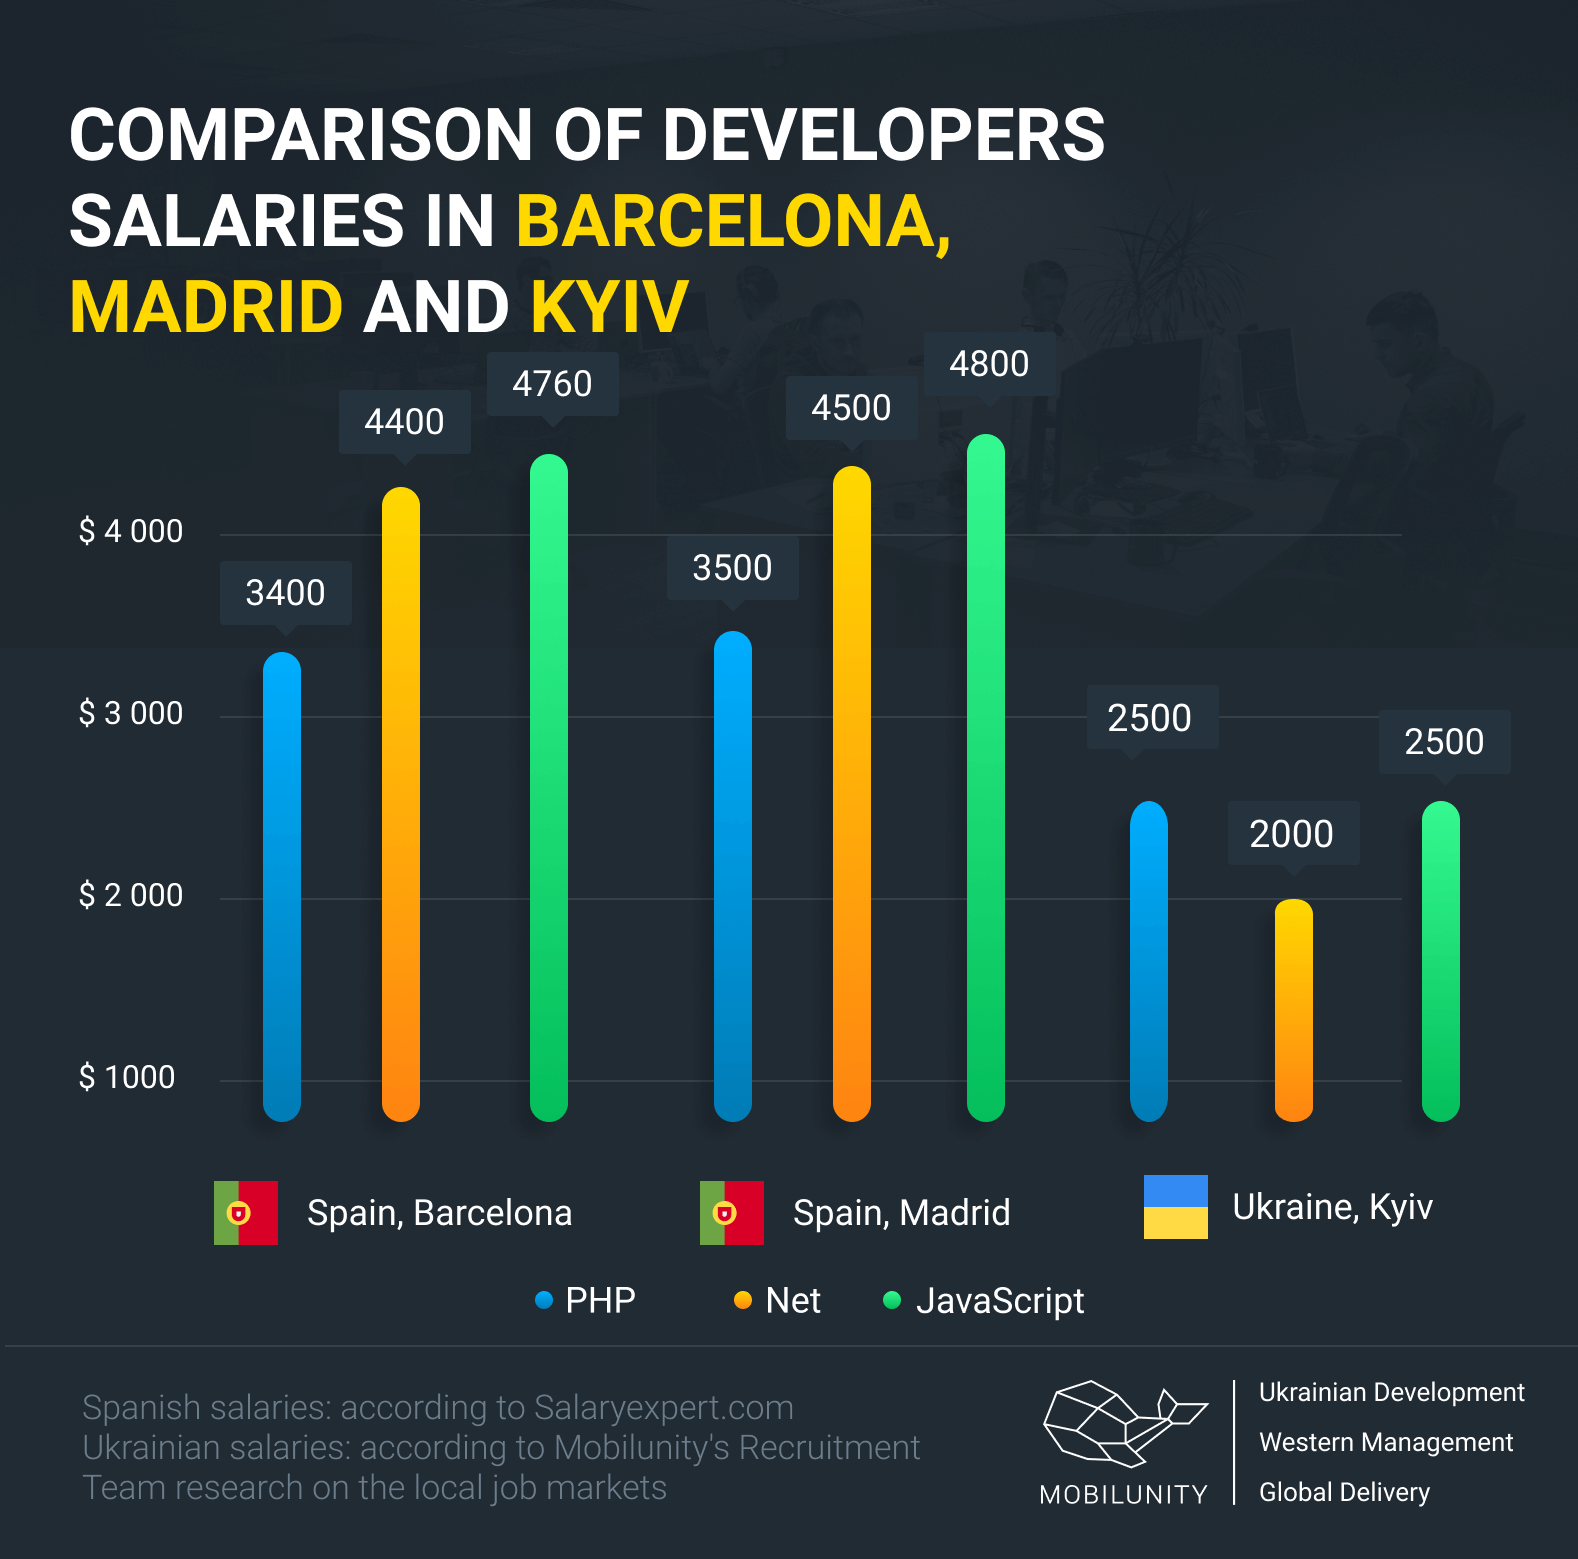 developers salaries comparison in Barcelona, Madrid and Kyiv